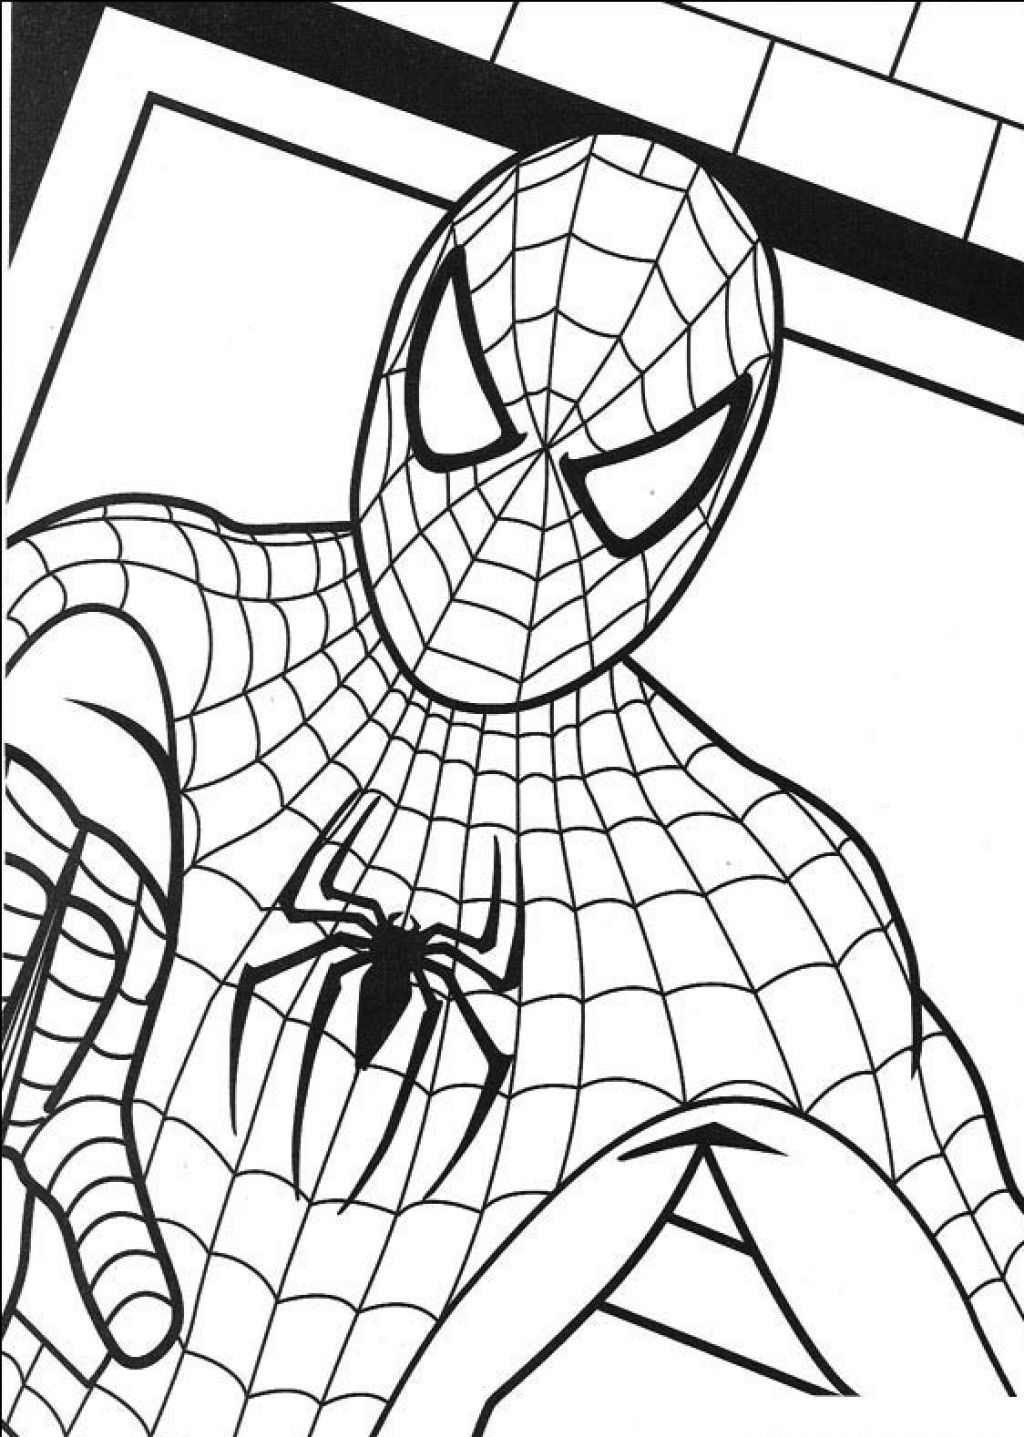 Free Printable Spiderman Coloring Pages For Kids | Coloring Pages - Free Printable Spiderman Coloring Pages